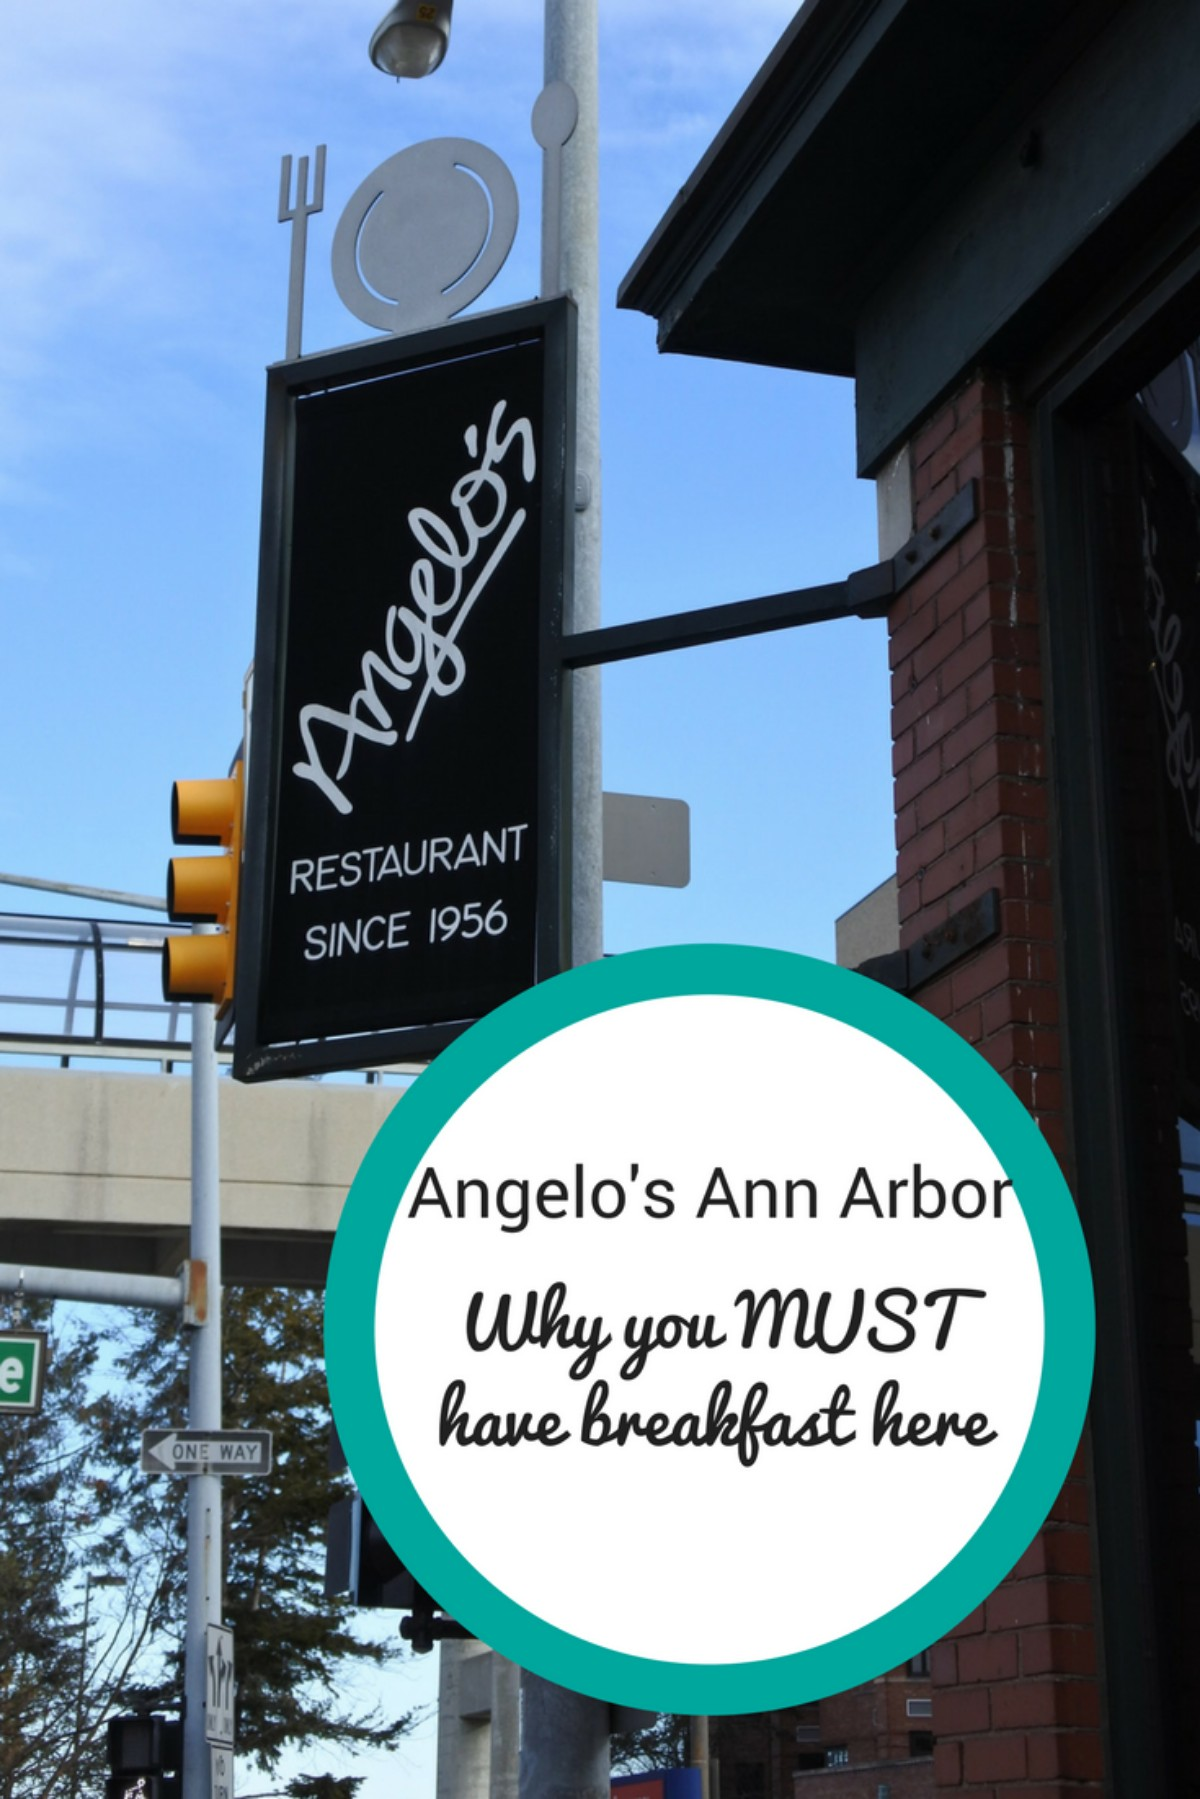 Looking for a hearty old-fashioned breakfast in Ann Arbor? Then Angelo's is the place to go! Find out why I am dream of their toast.